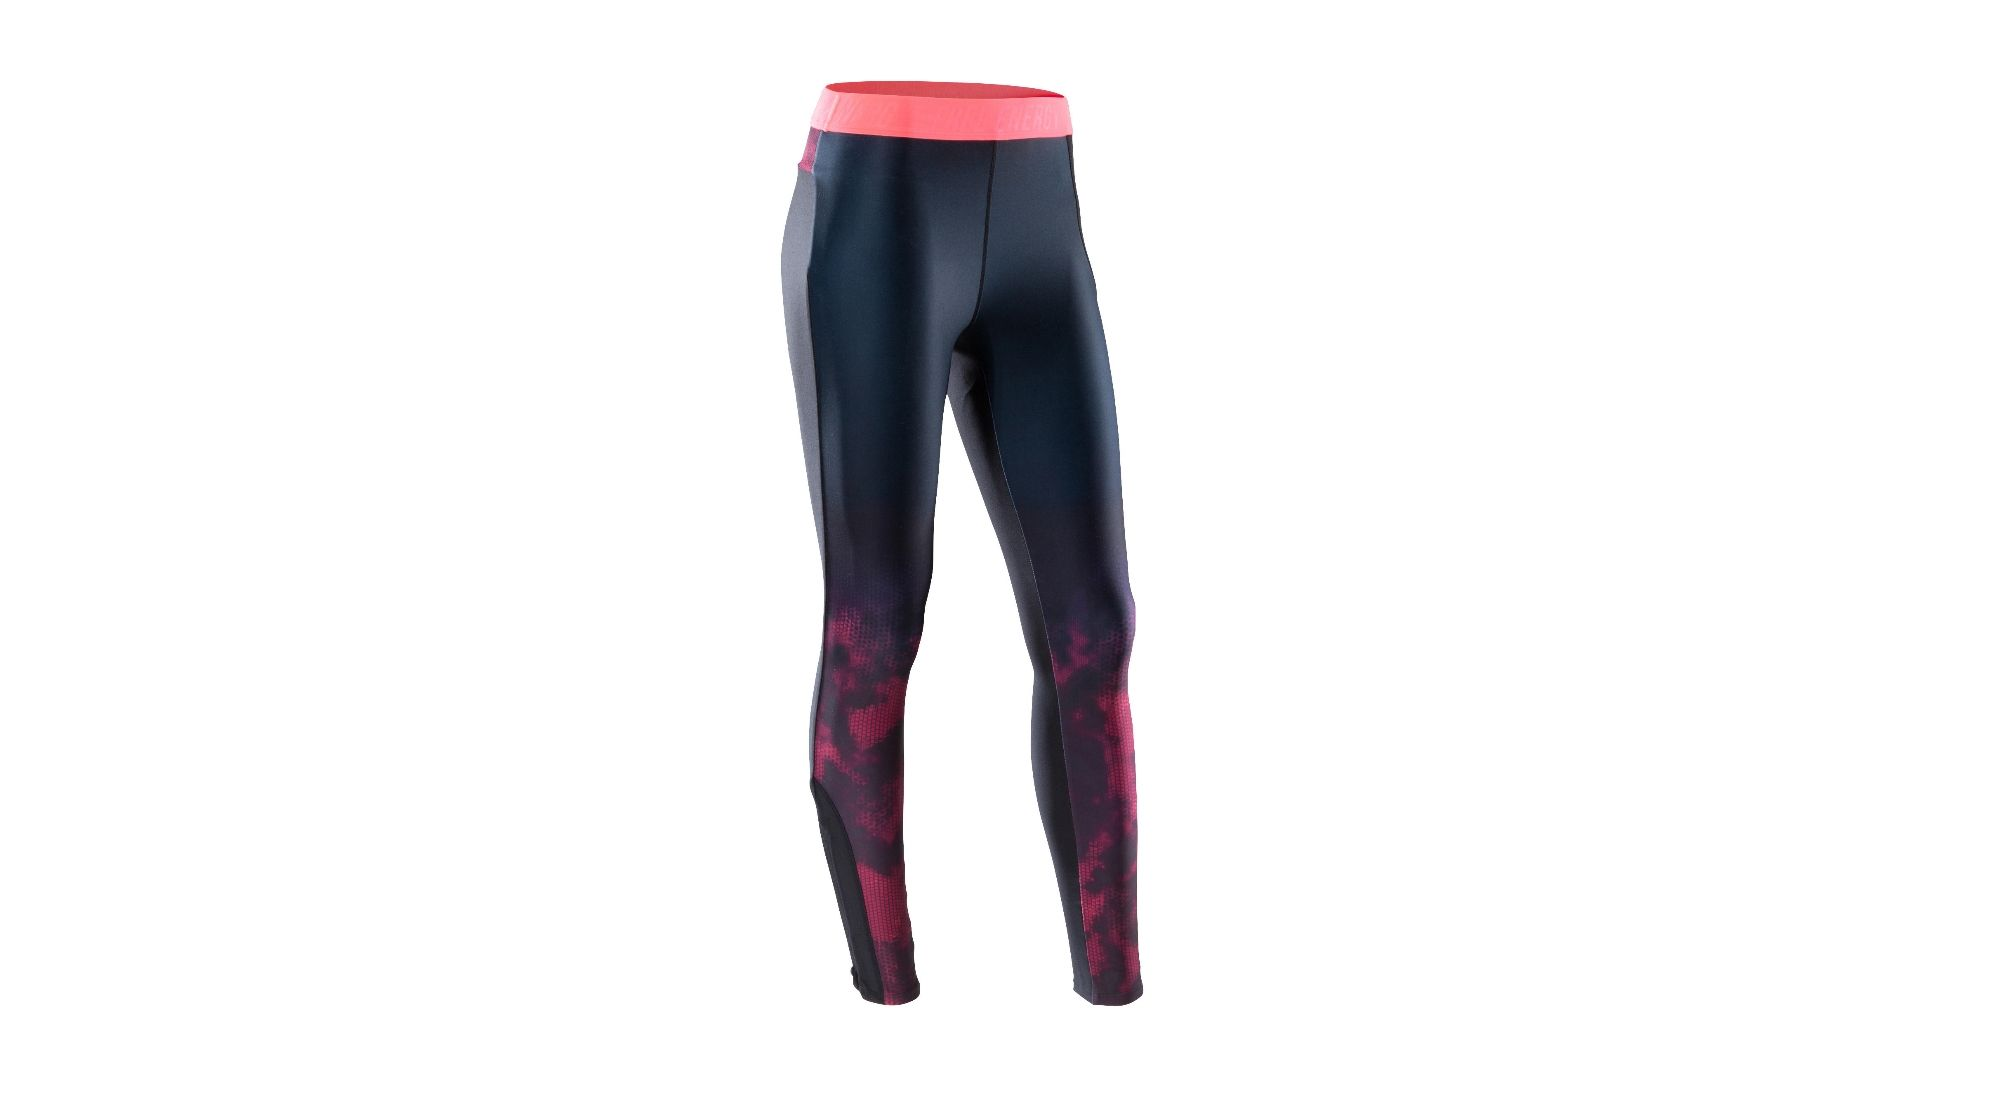 3816f7fae179f Stylish Sportswear For Women For Running, Yoga, Training And More